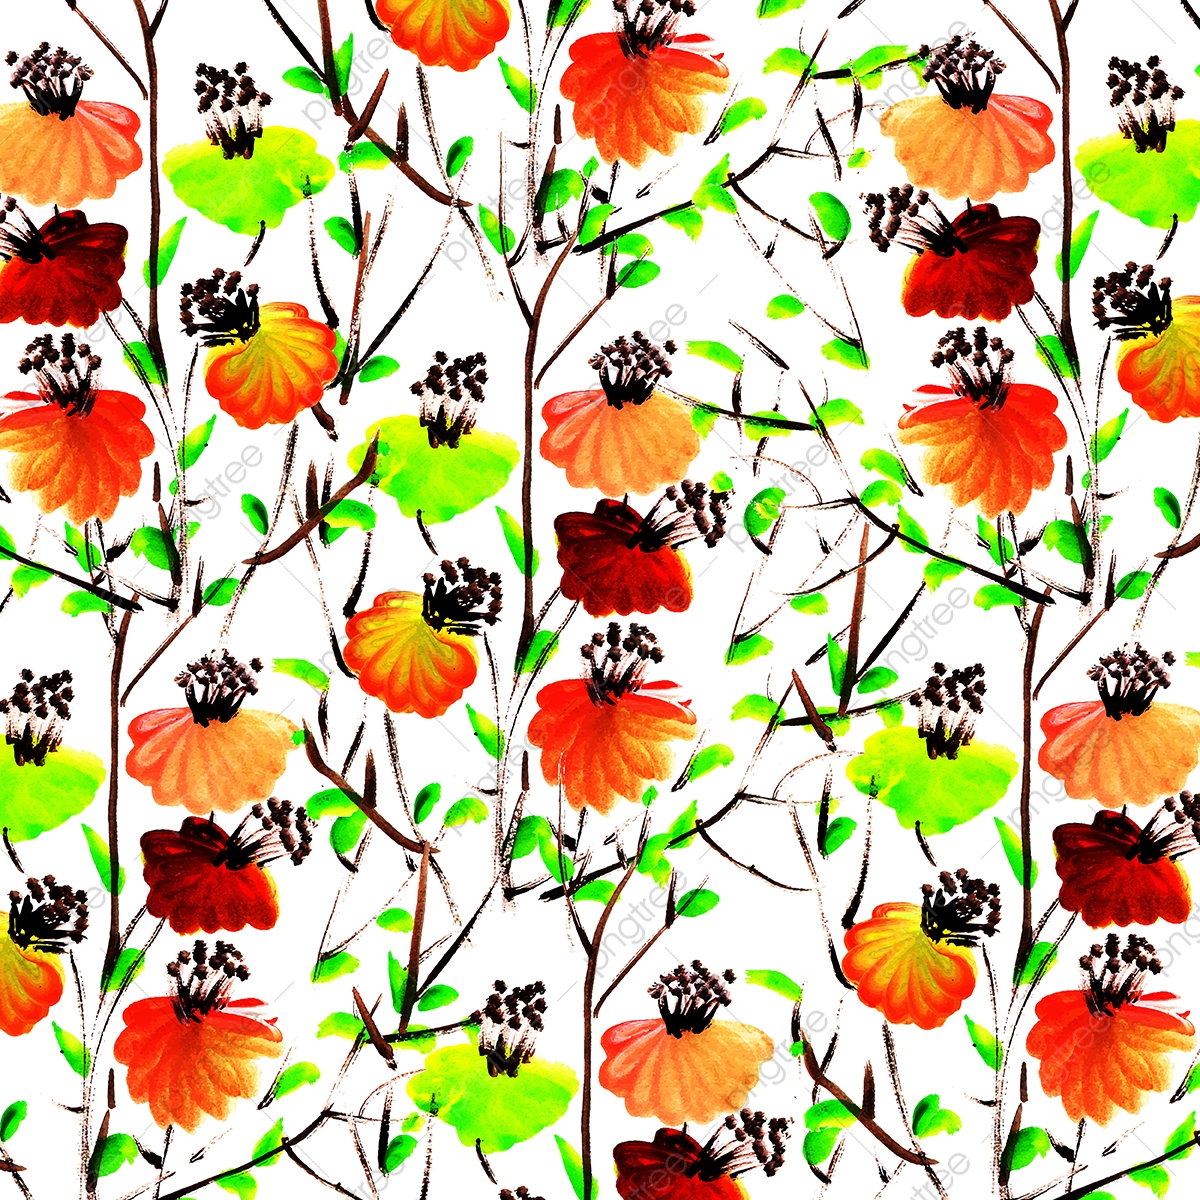 Watercolor Floral Background Watercolor Wallpaper Coquelicot